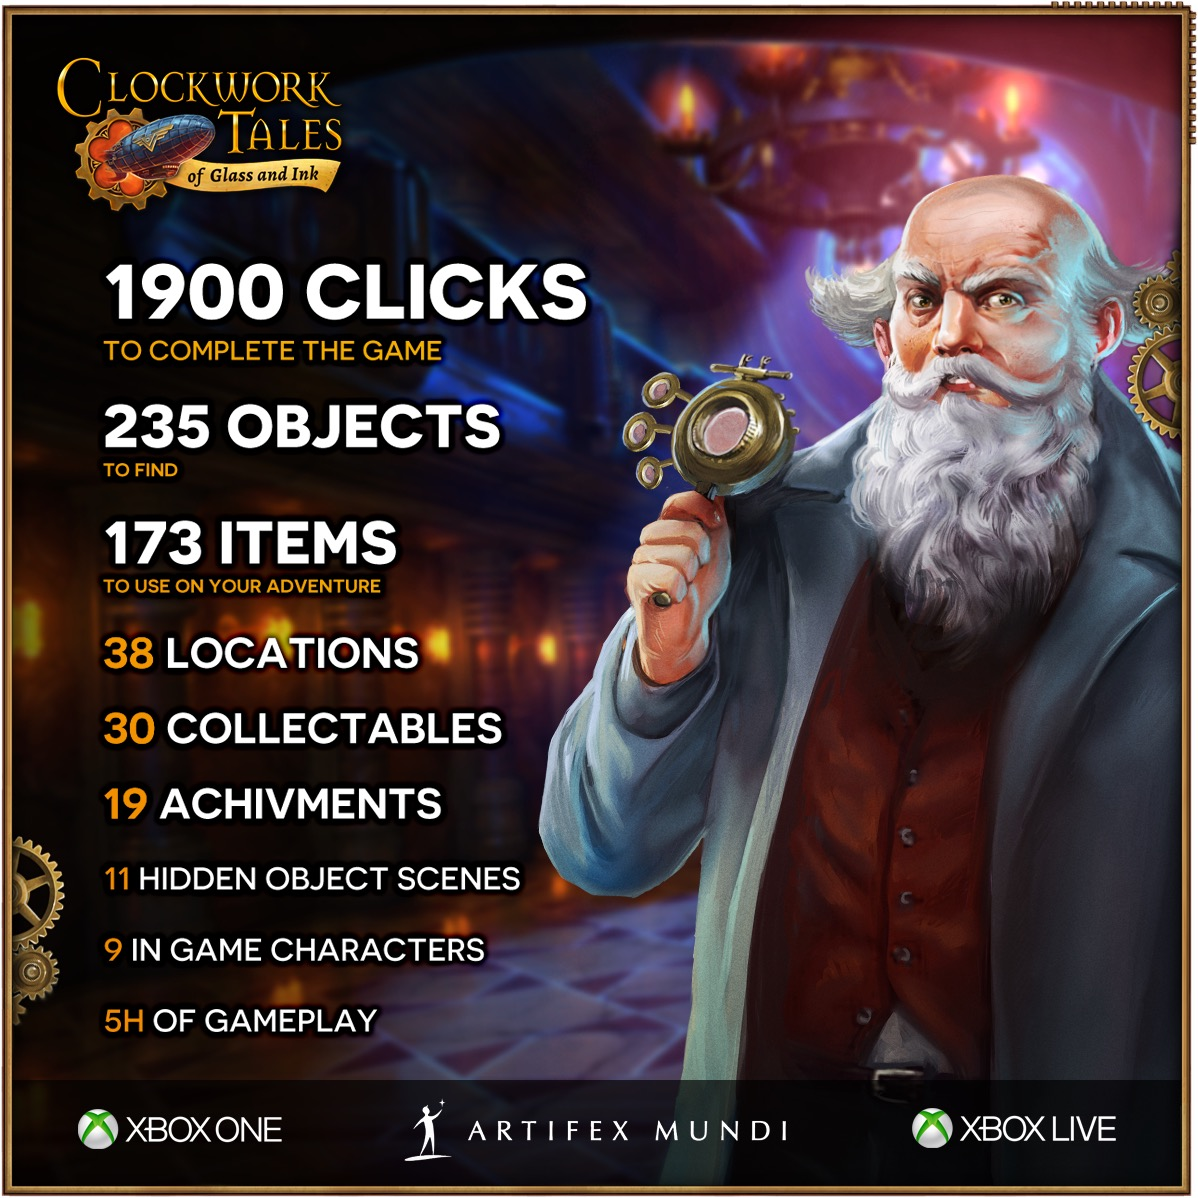 Clockwork Tales Of Glass and Ink Achievements